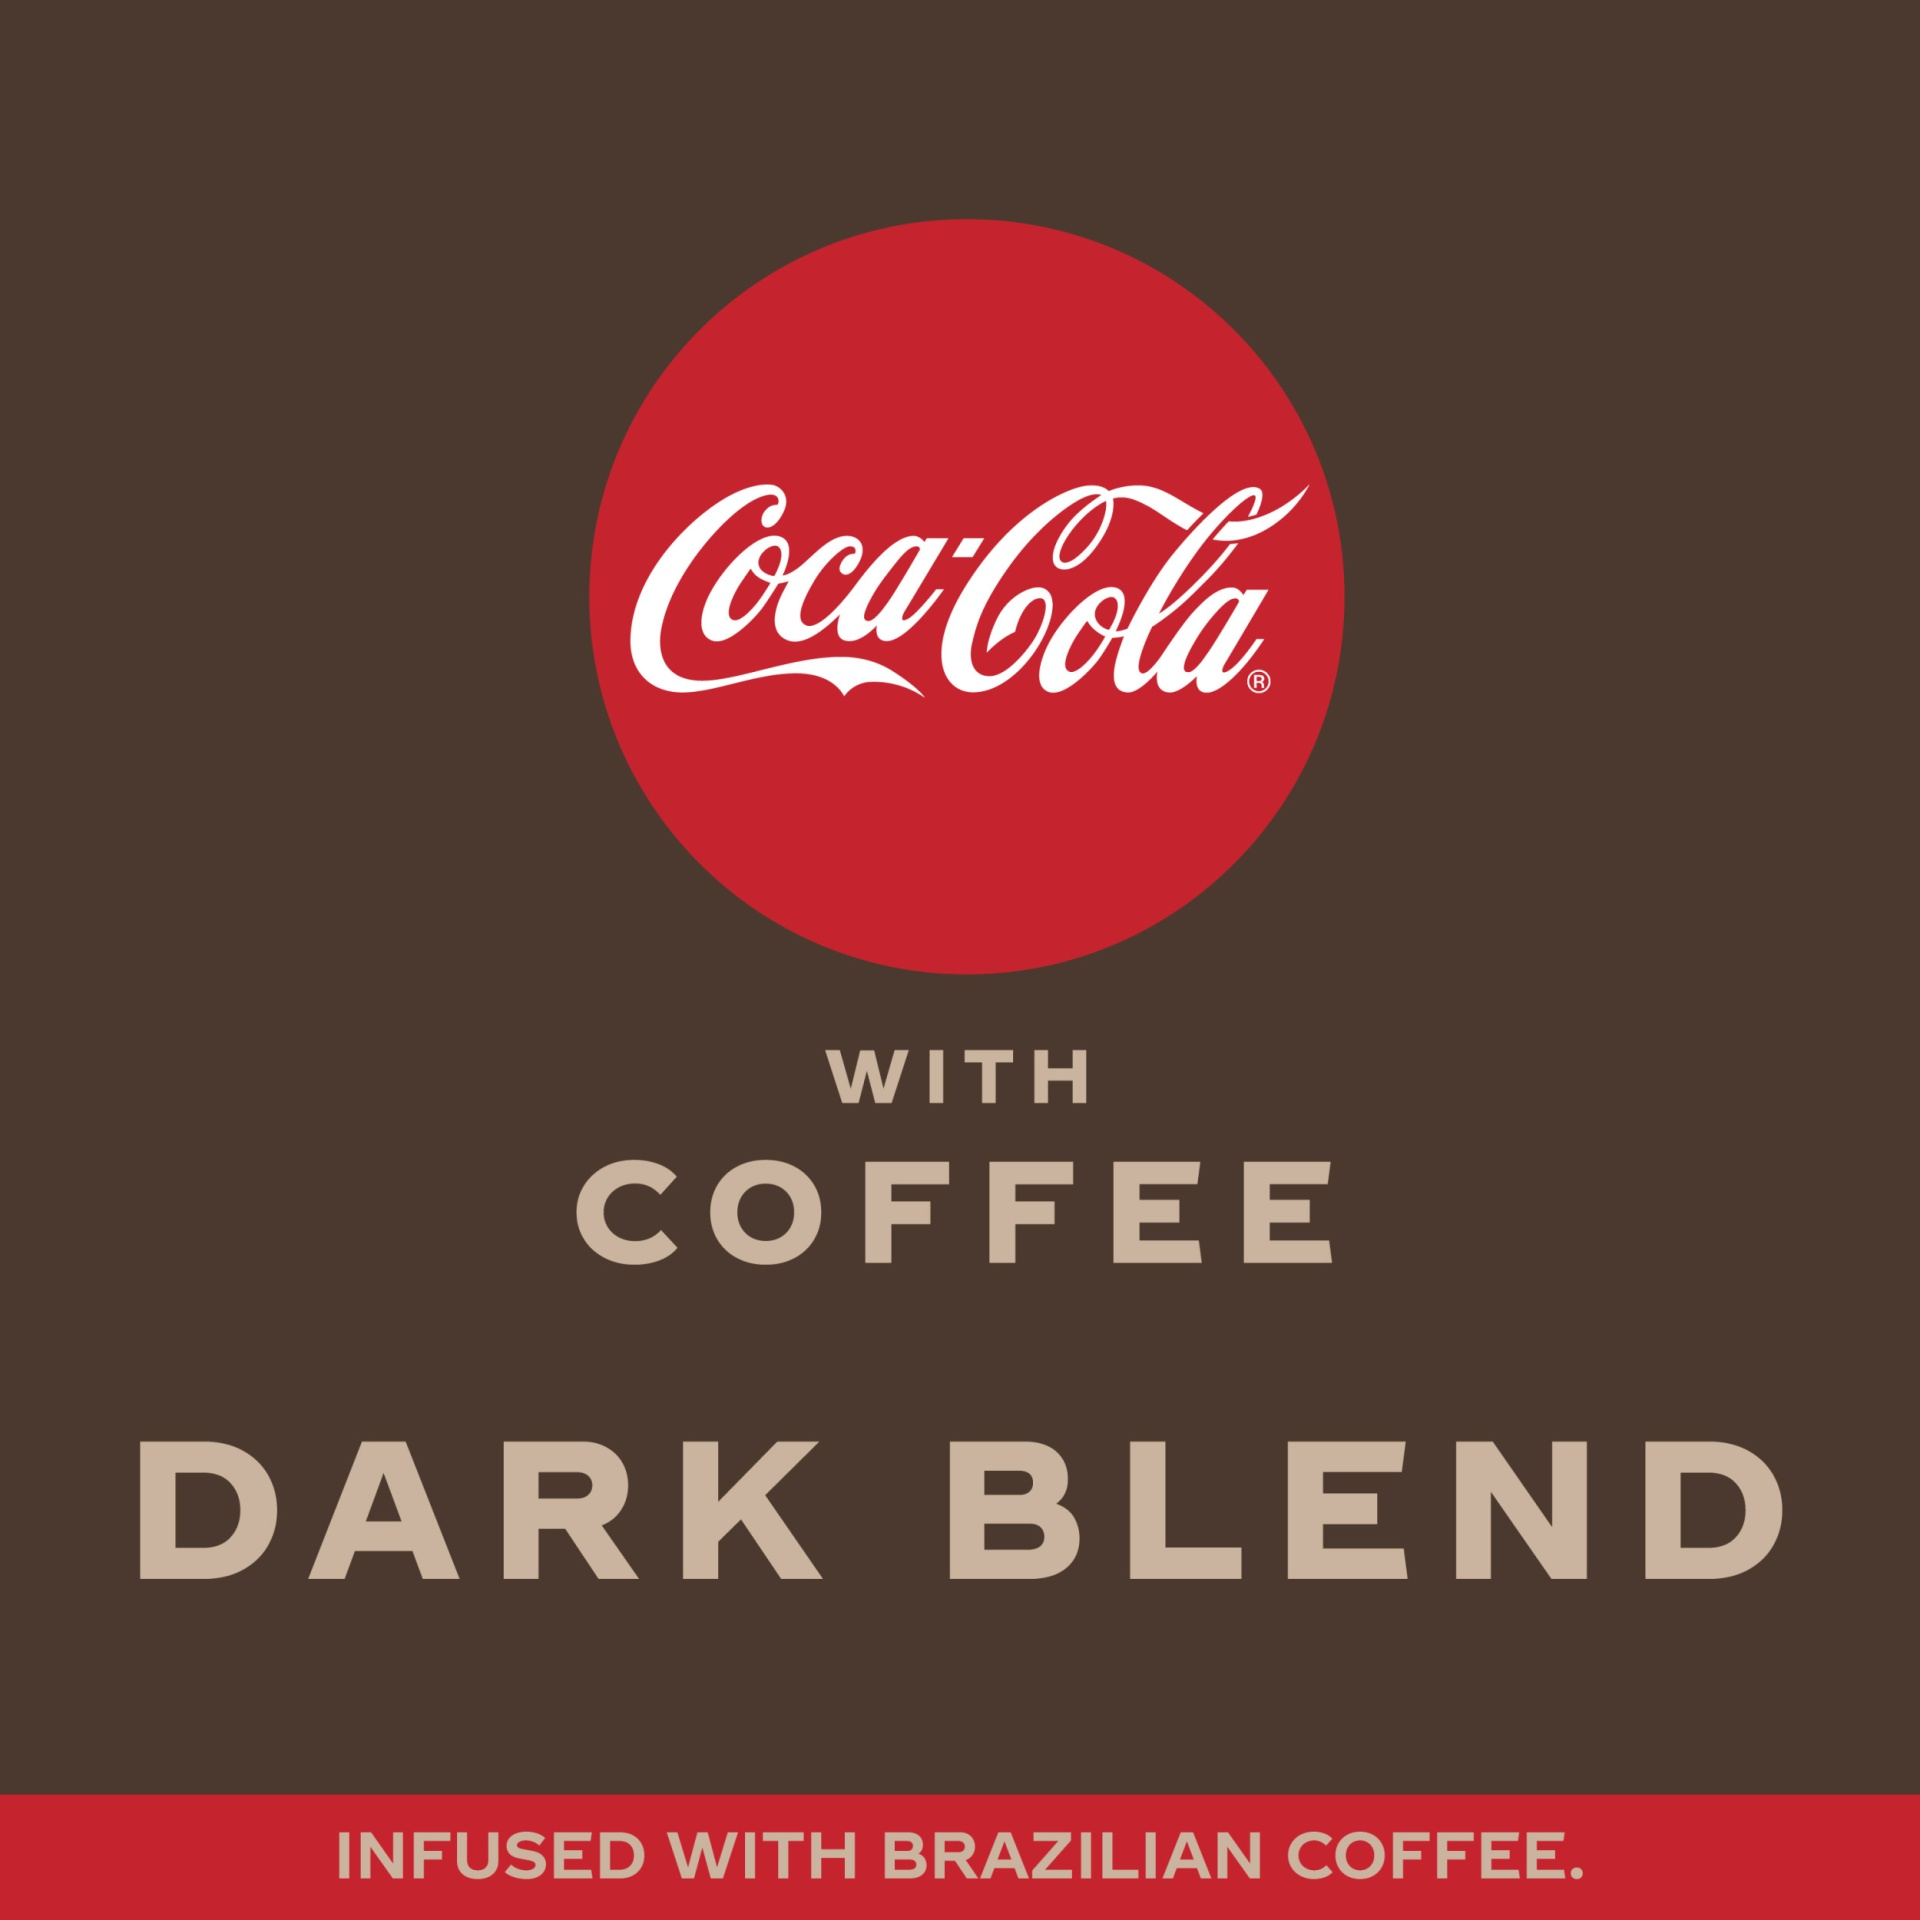 slide 11 of 13, Coca-Cola With Coffee Dark Blend,